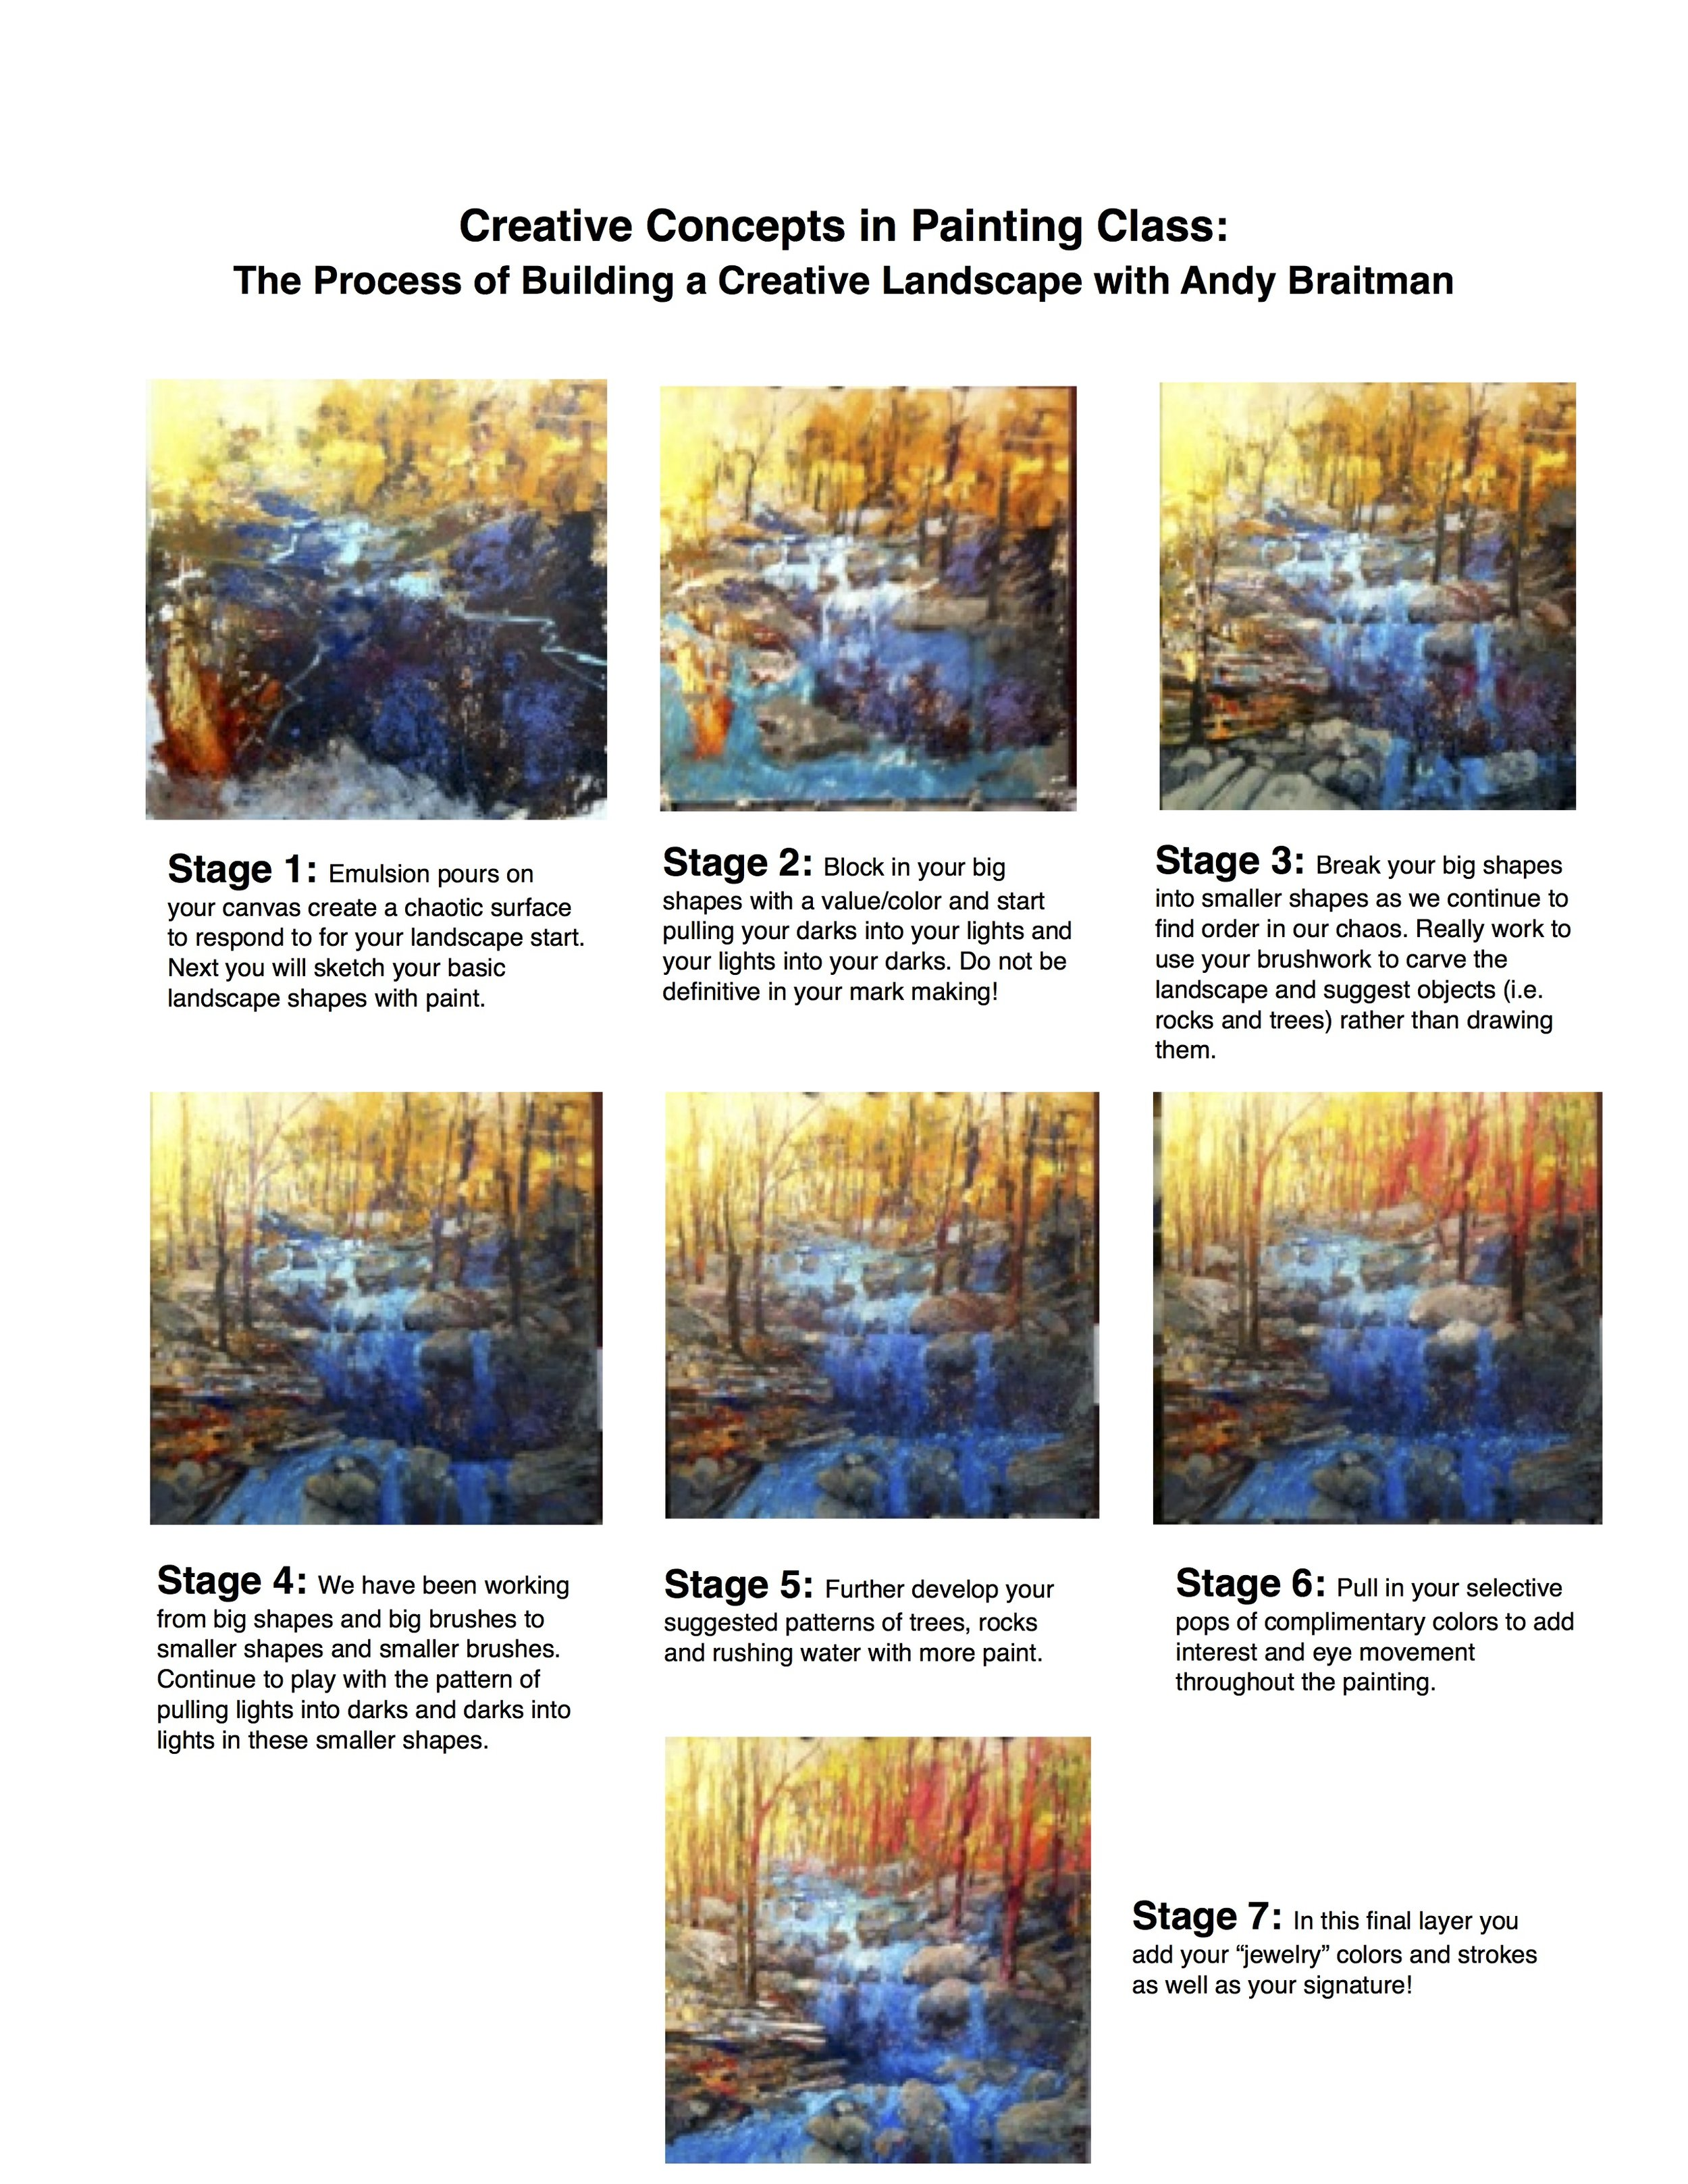 Creative Concepts in Painting Class-  The Process of Building a Creative Landscape with Andy Braitman